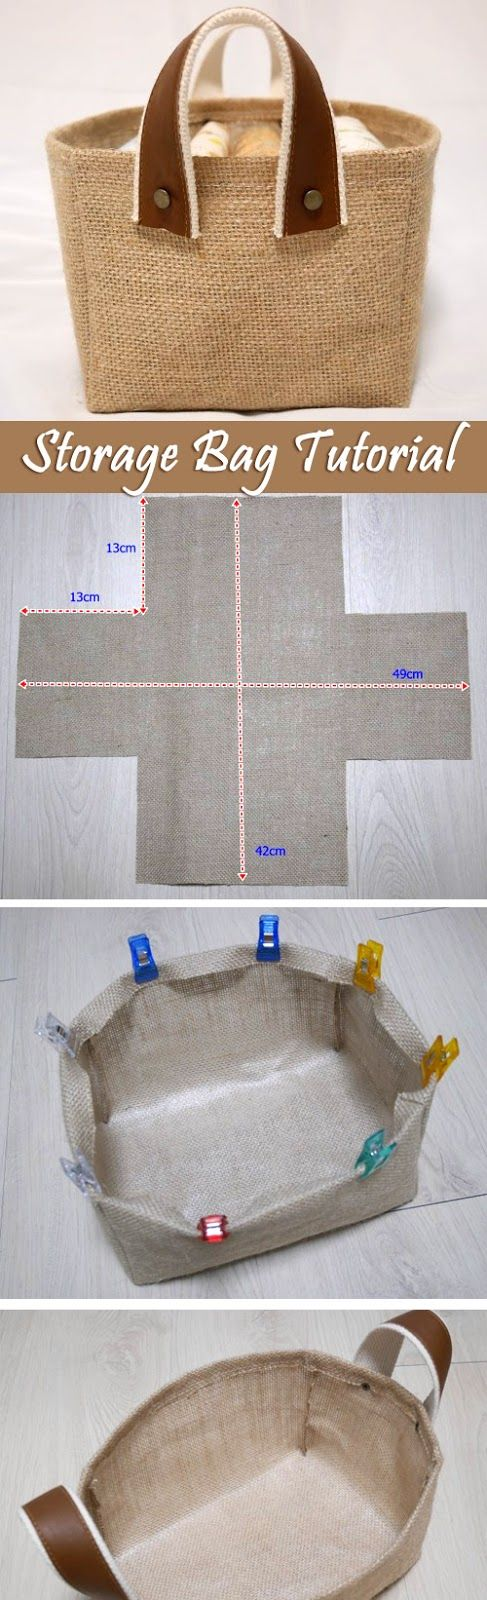 Storage Fabric Burlap Box Pattern and Tutorial. Bag Step by step photo tutorial.